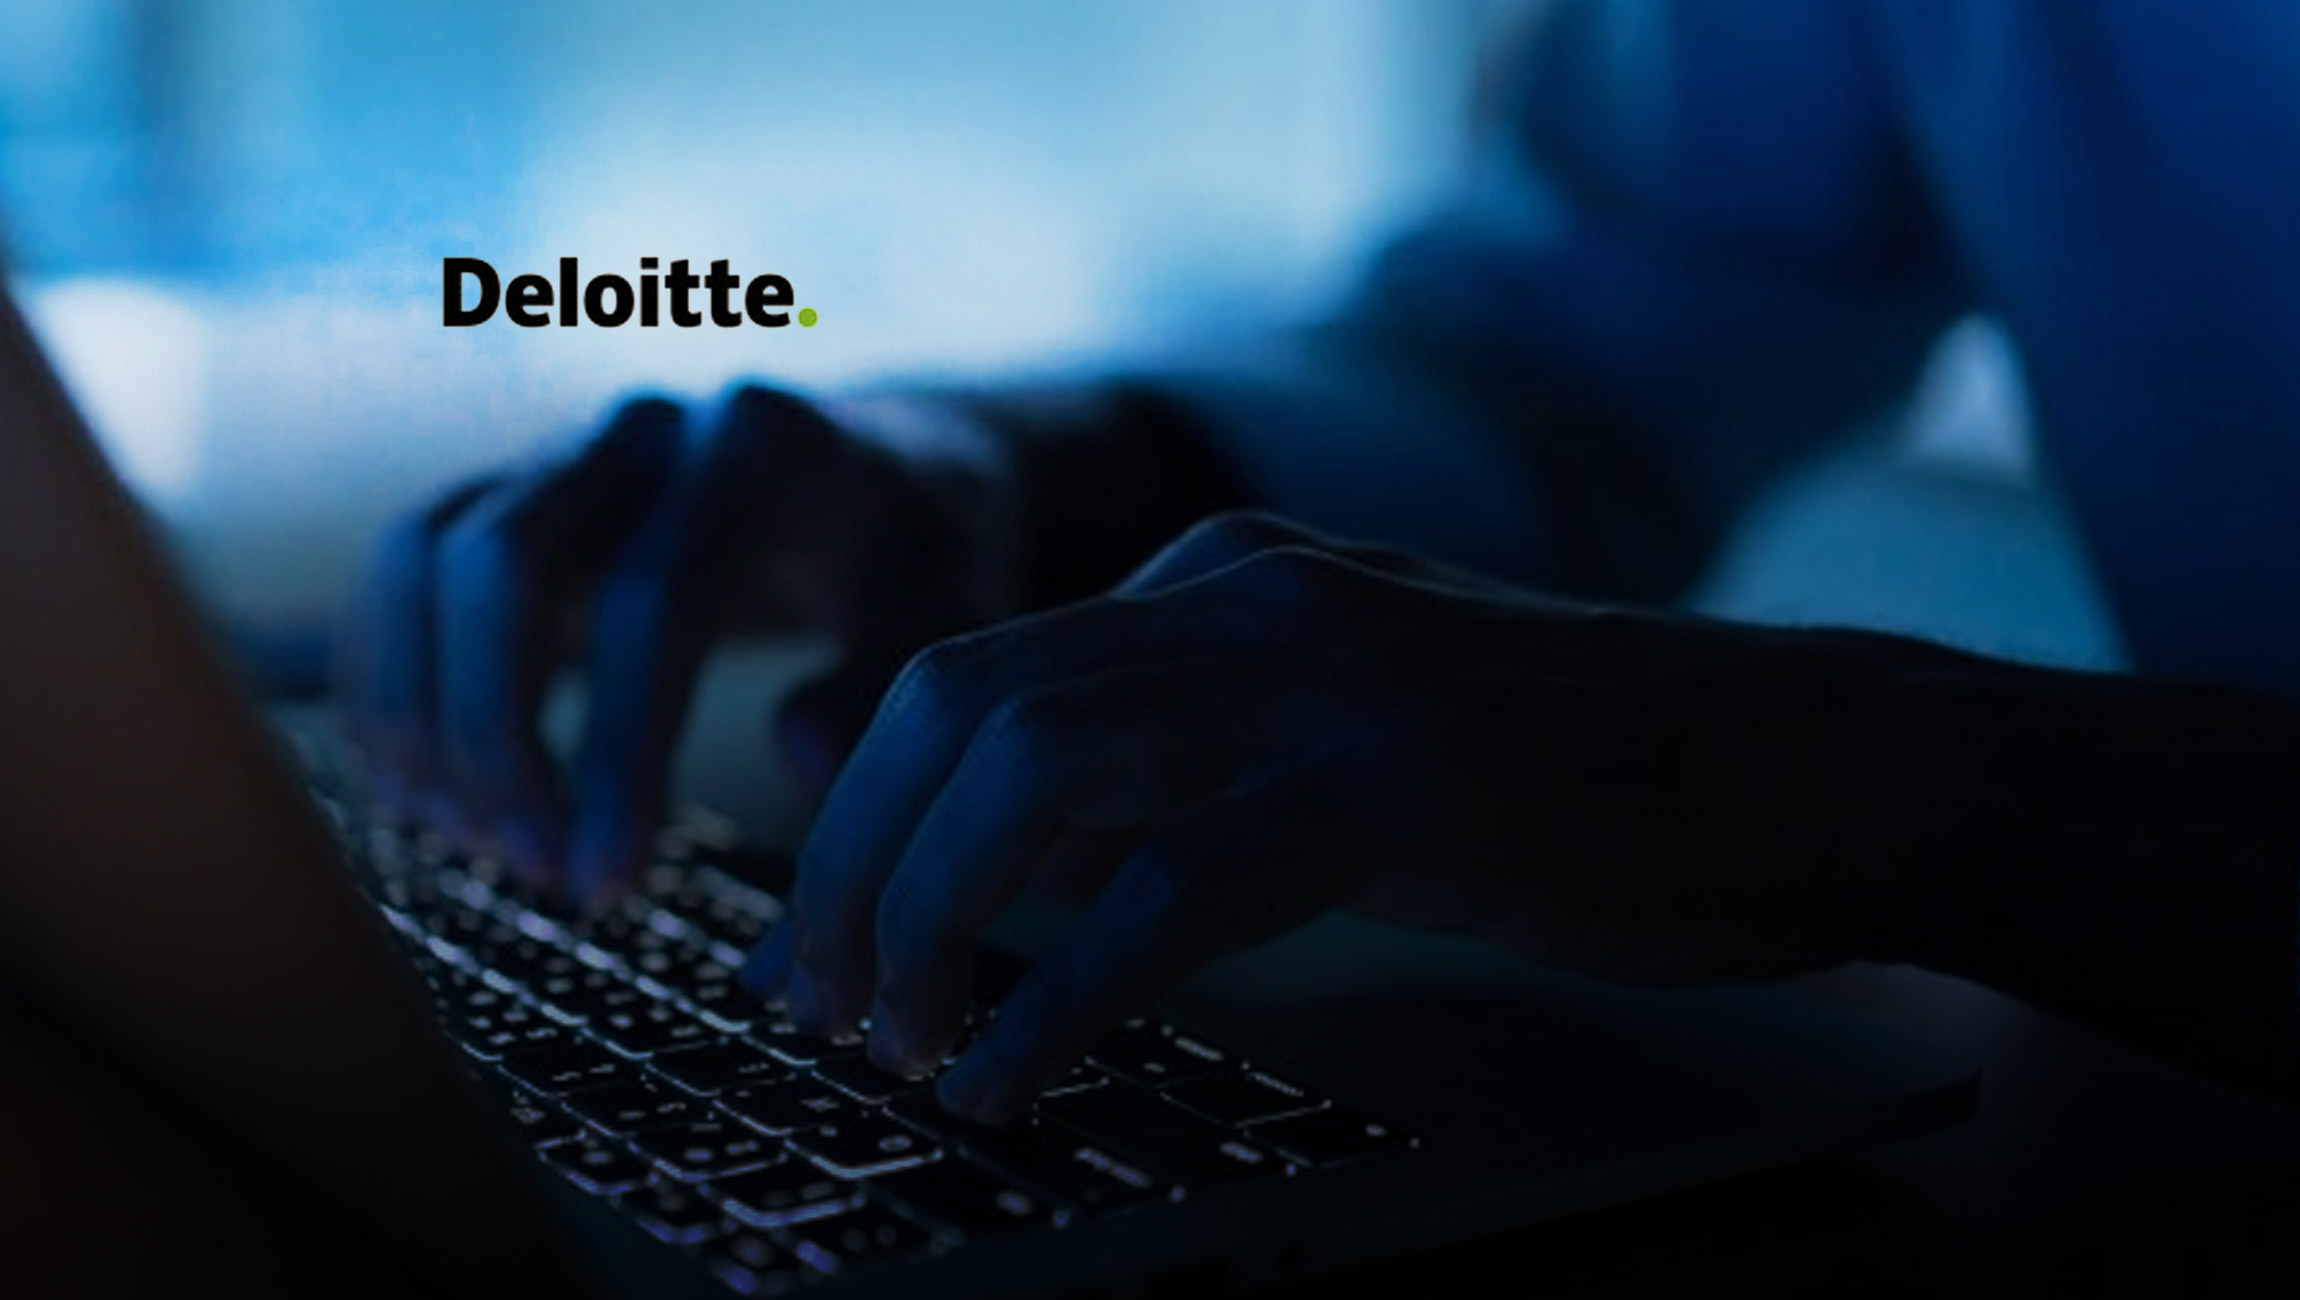 Deloitte Global Intelligent Automation Study Reveals Dramatic Acceleration in Adoption of Automation Technologies